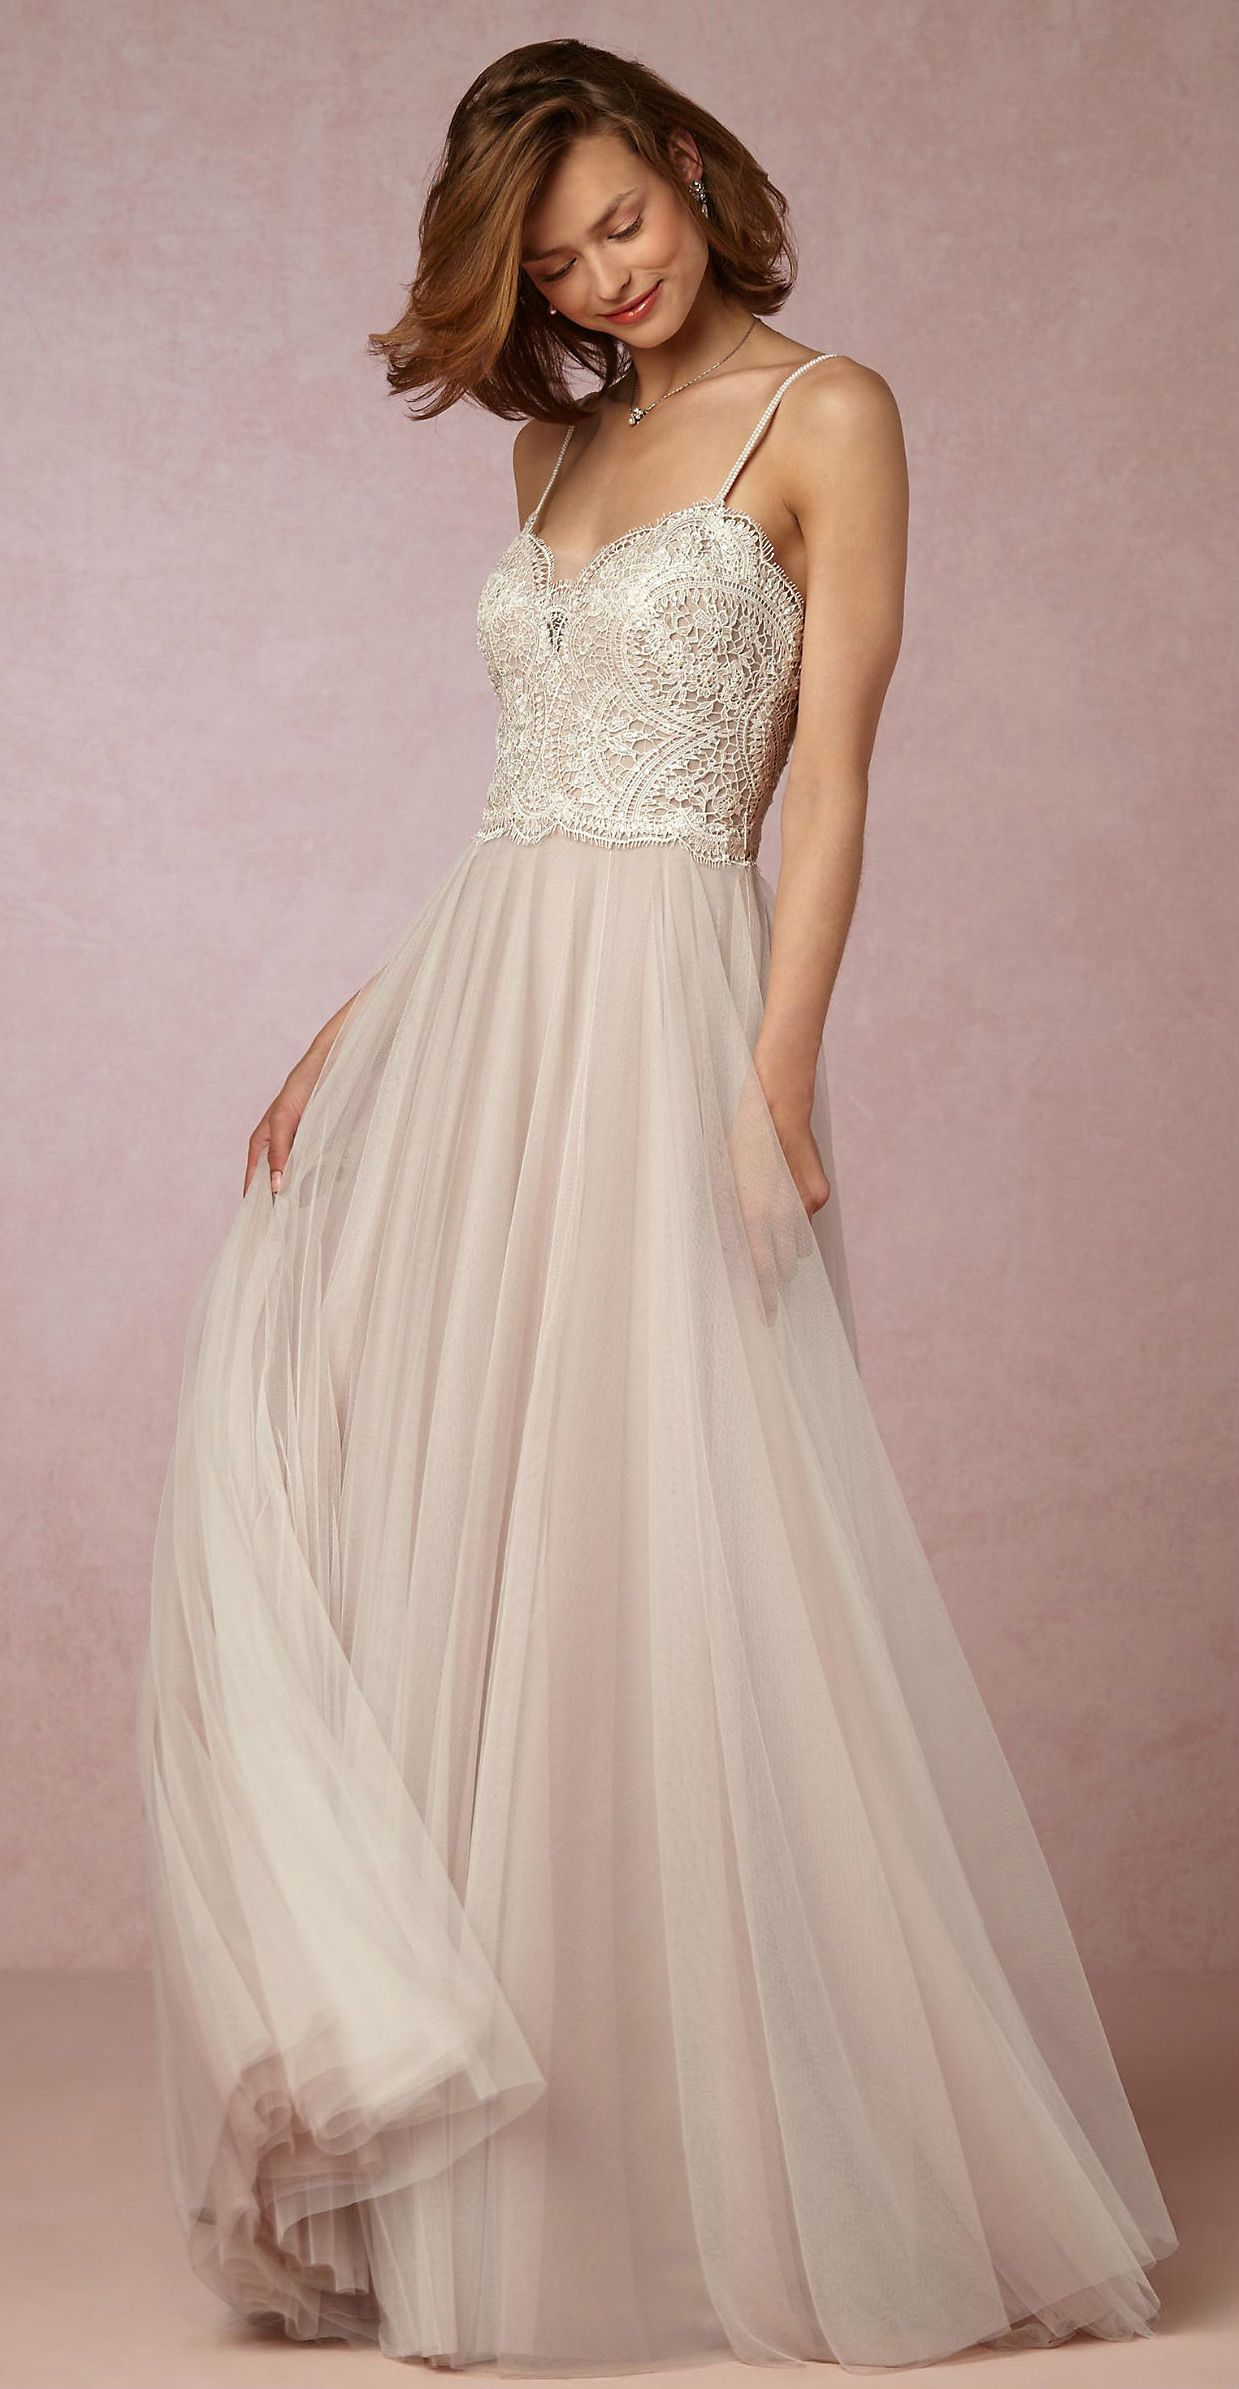 Lace And Tulle Wedding Dress Nina Gown Bhldn Dresses